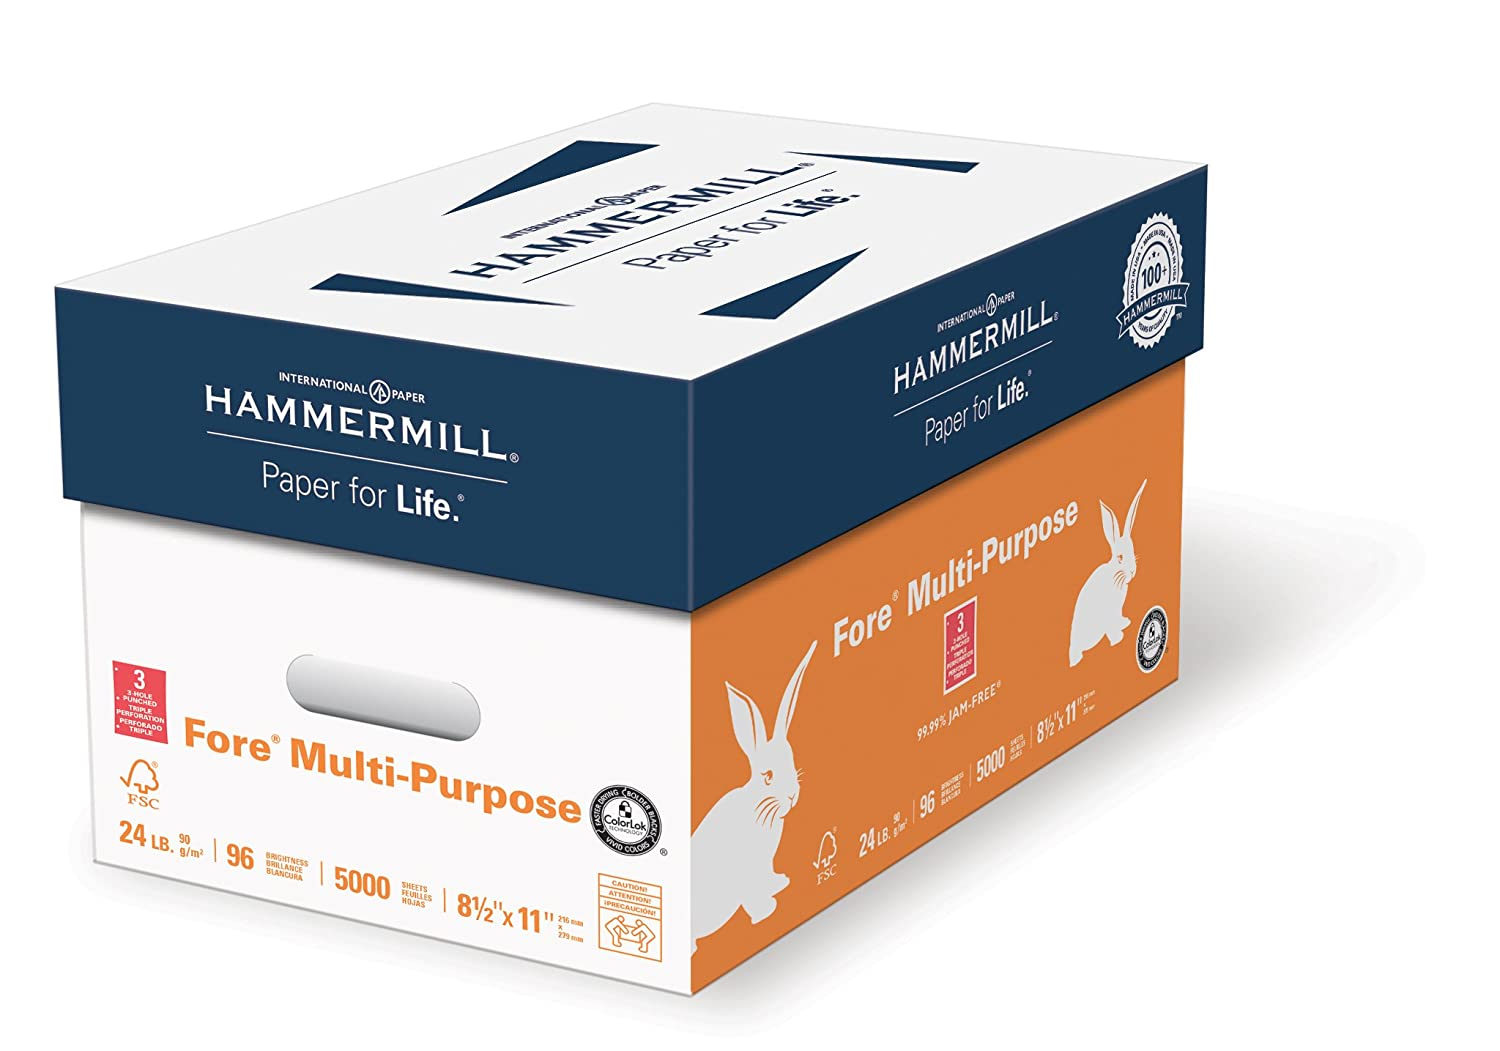 Hammermill Printer Paper, Fore MP Copy Paper, 24lb, 8.5 x 11, Letter, 96 Bright - 2,000 Sheets/Express Pack (no ream wrap) (163122C)